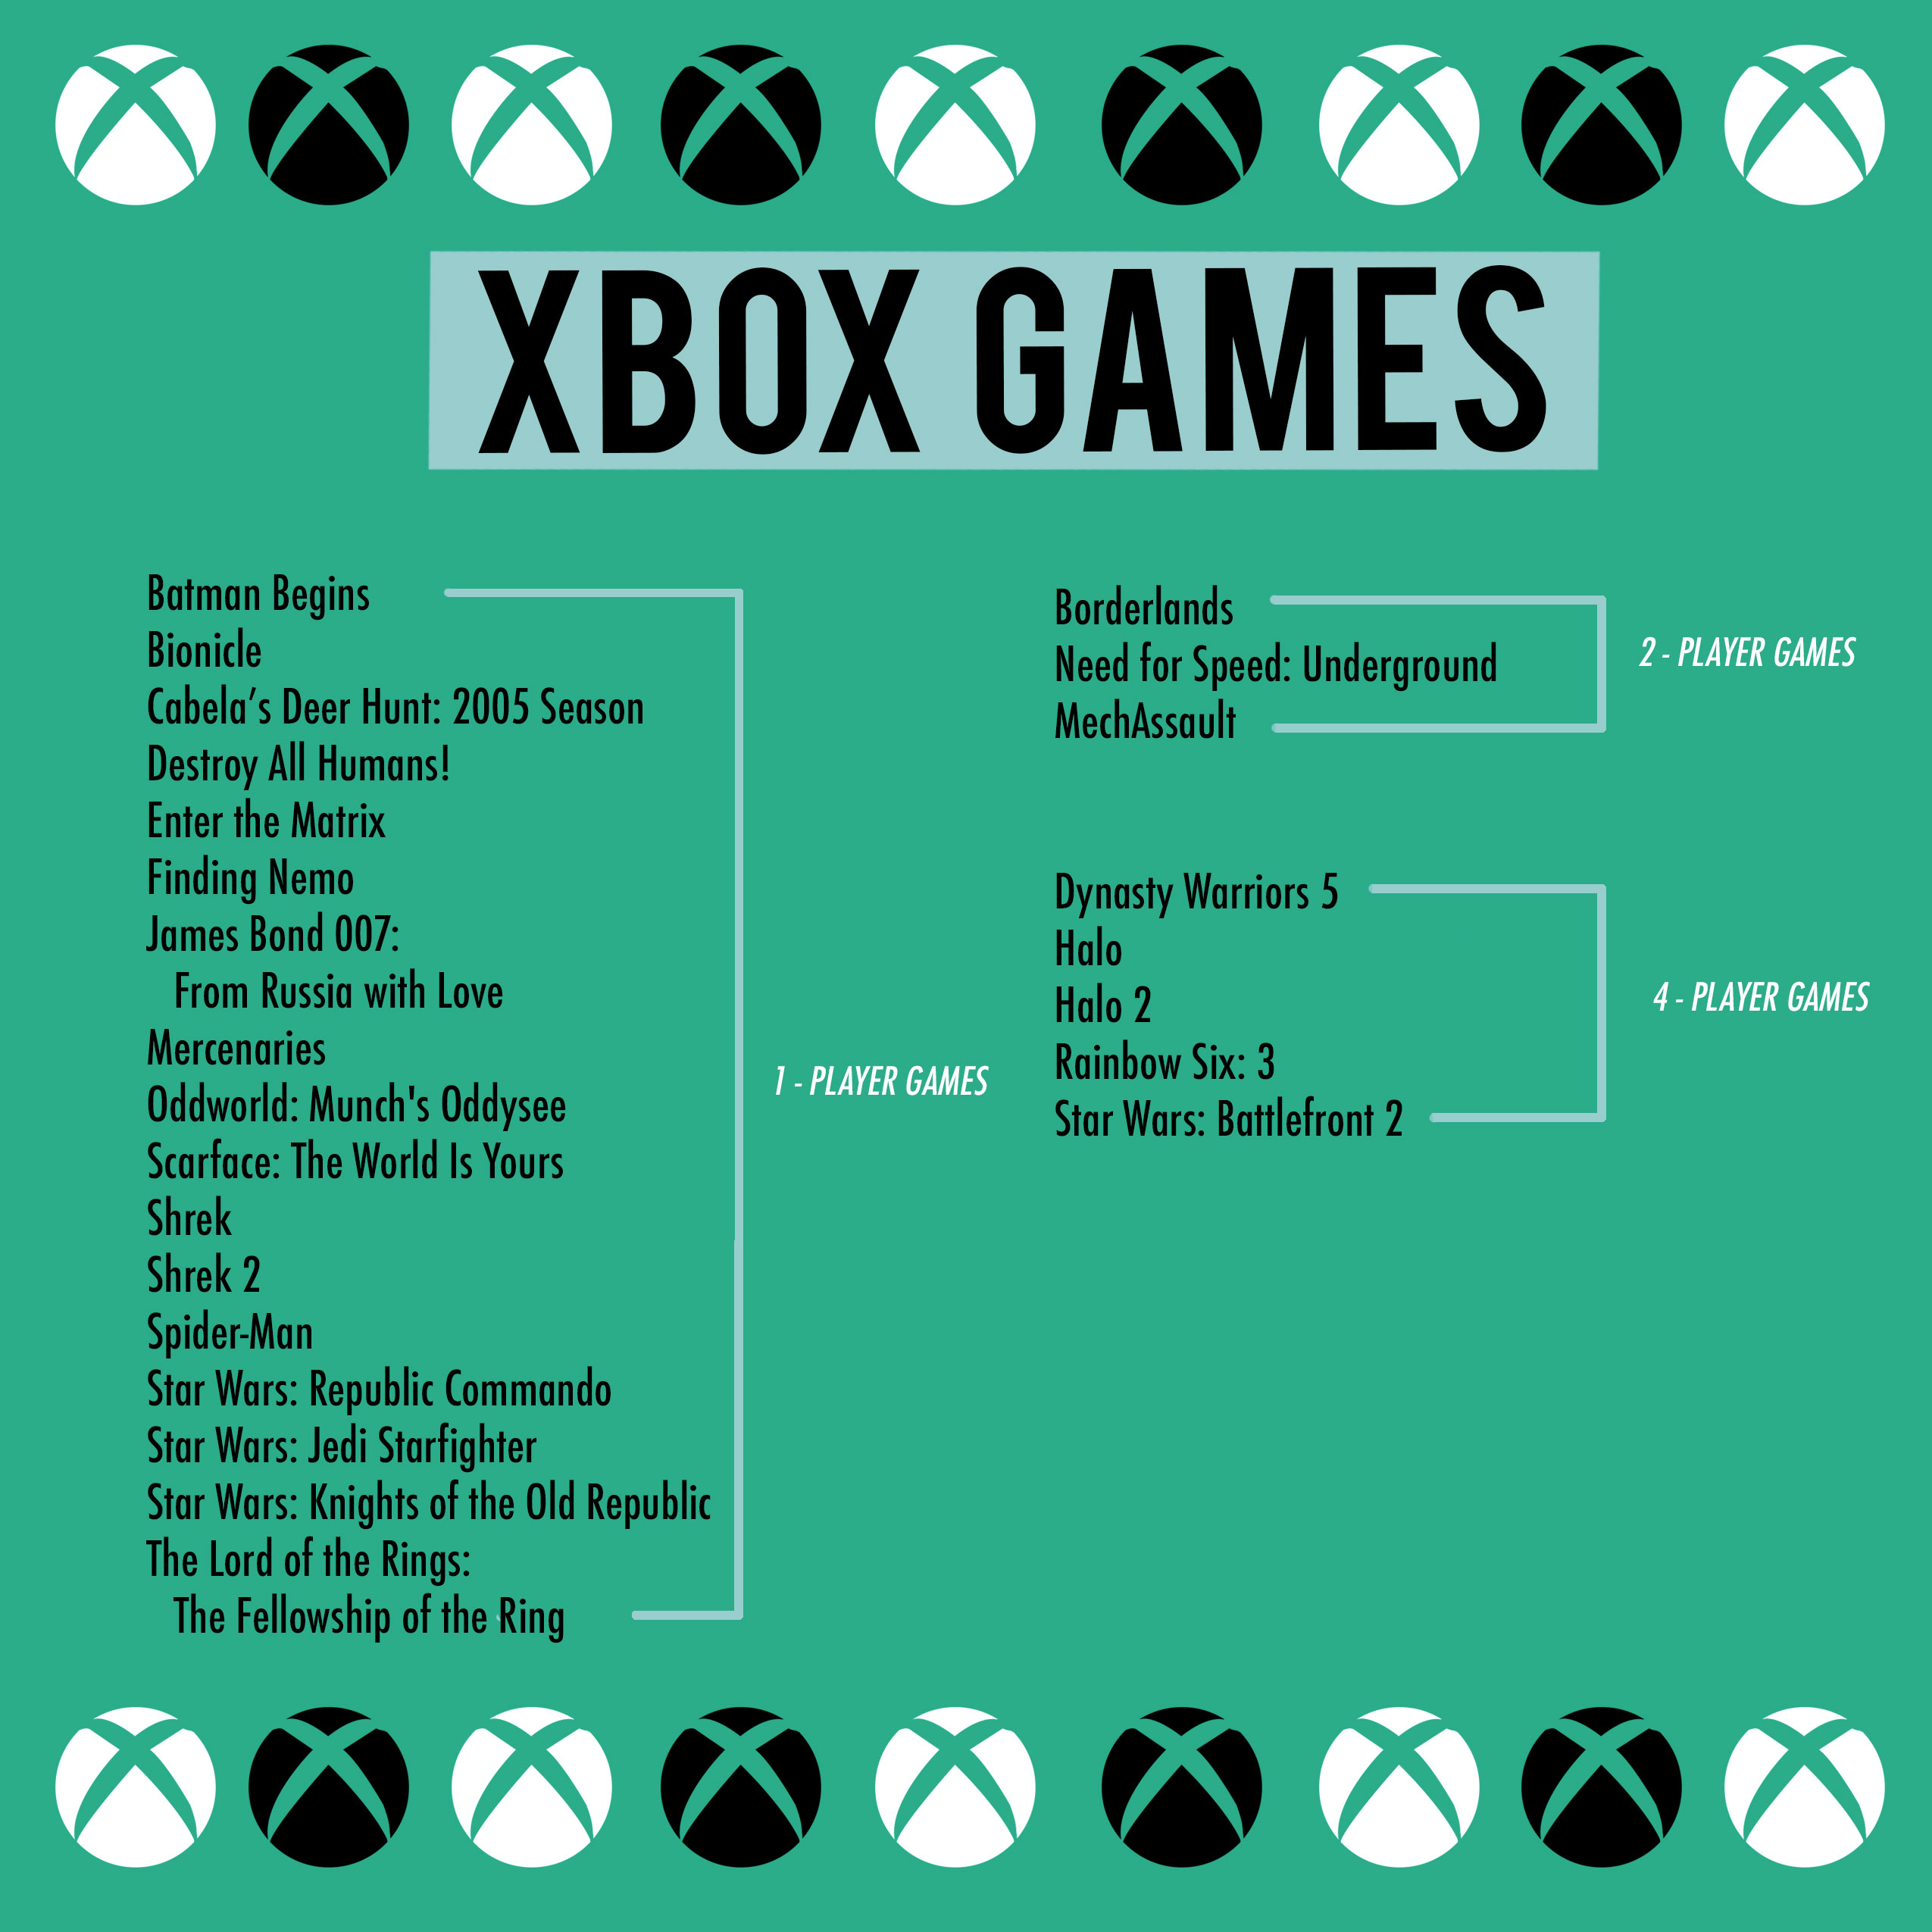 Xbox Games at the ASLC